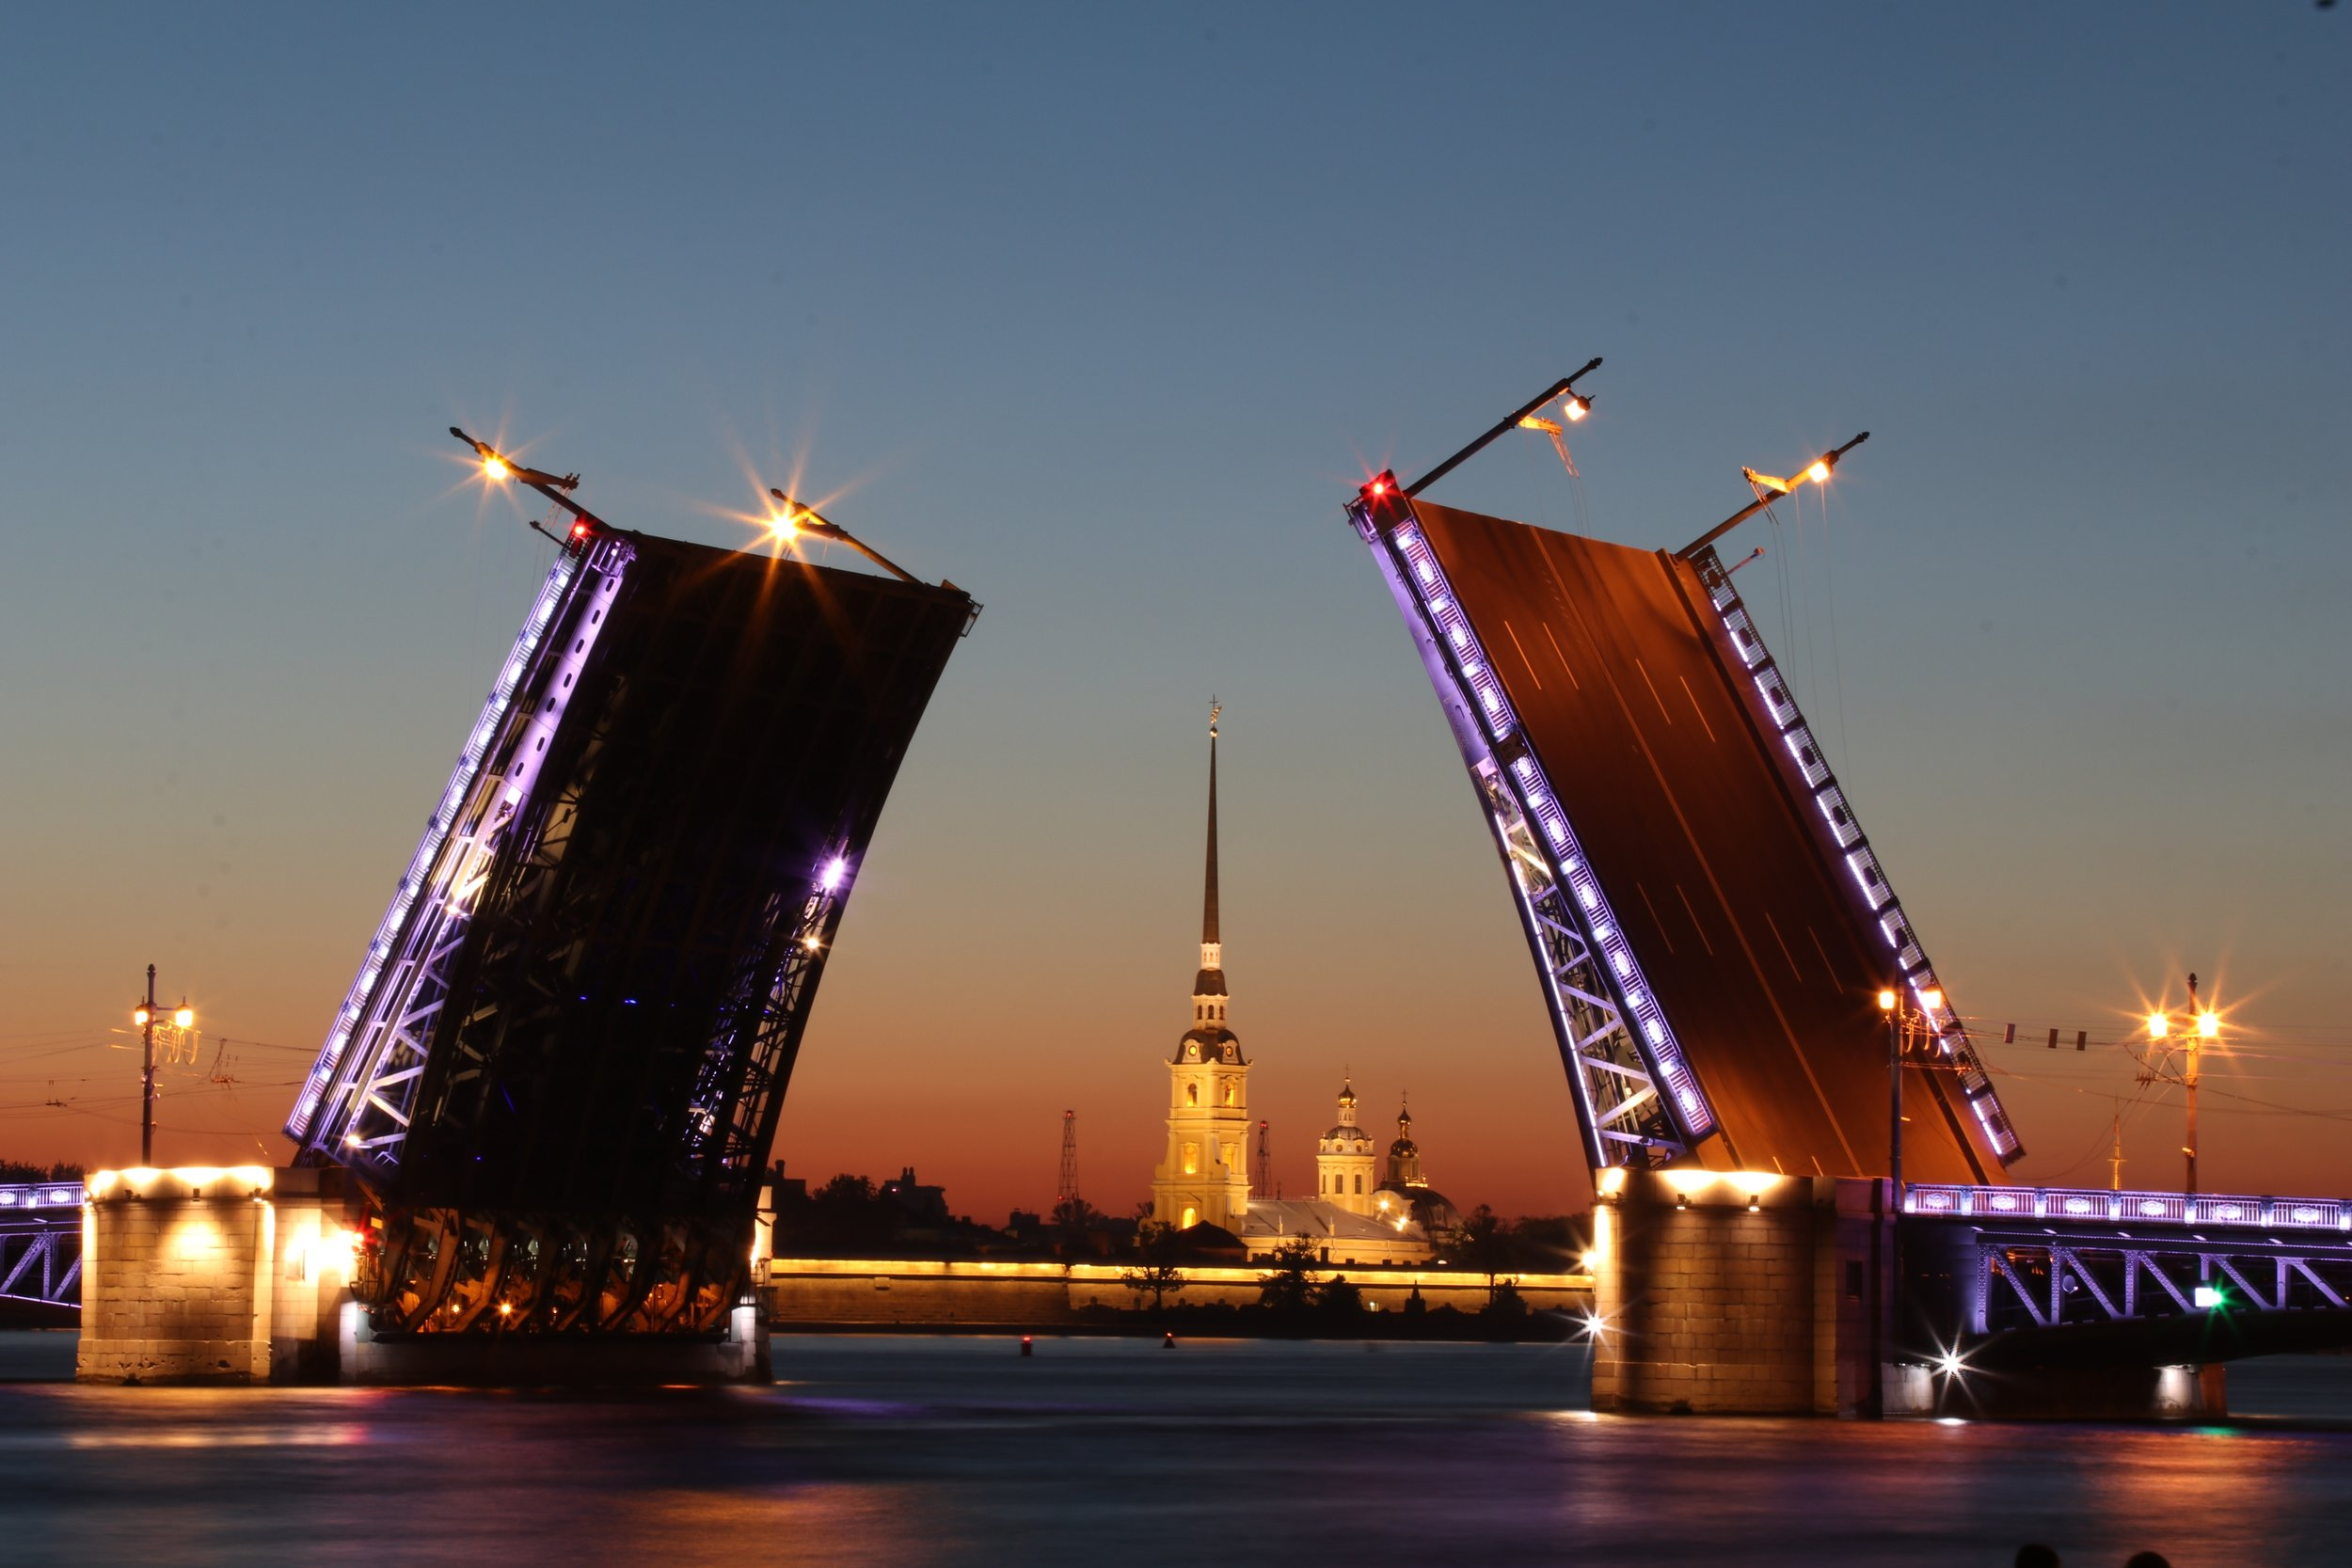 The Peter & Paul fortress on the bank of the Neva river